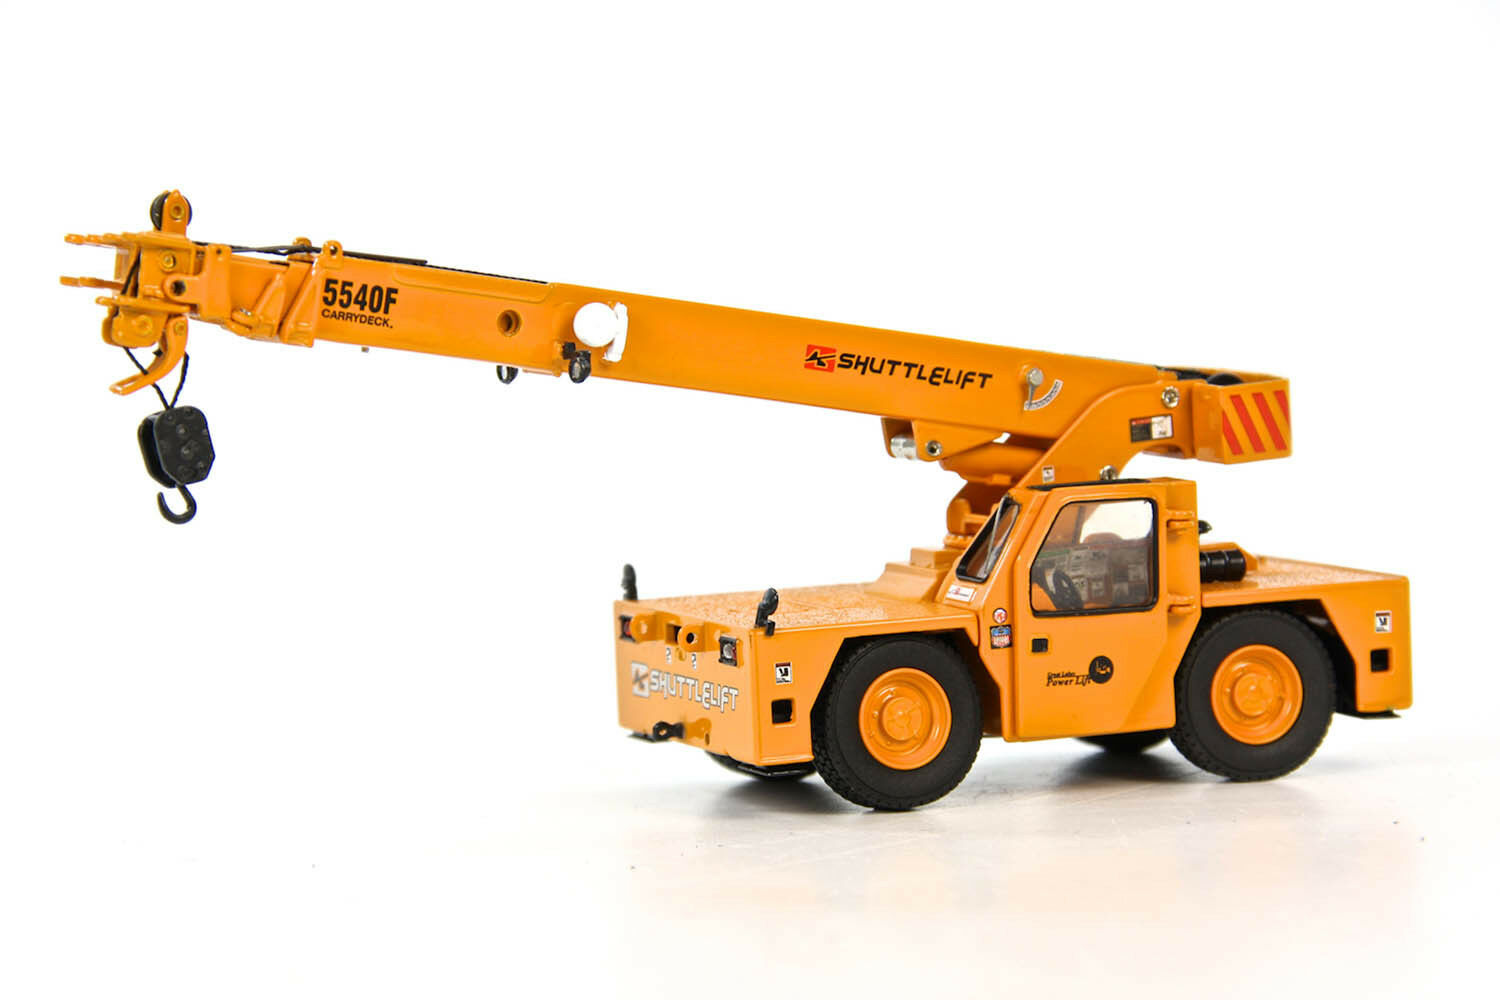 Épée SHUTTLELIFT 5540 F CRANE-Great Lakes Power 1 50 Die-Cast brand-new Comme neuf in box